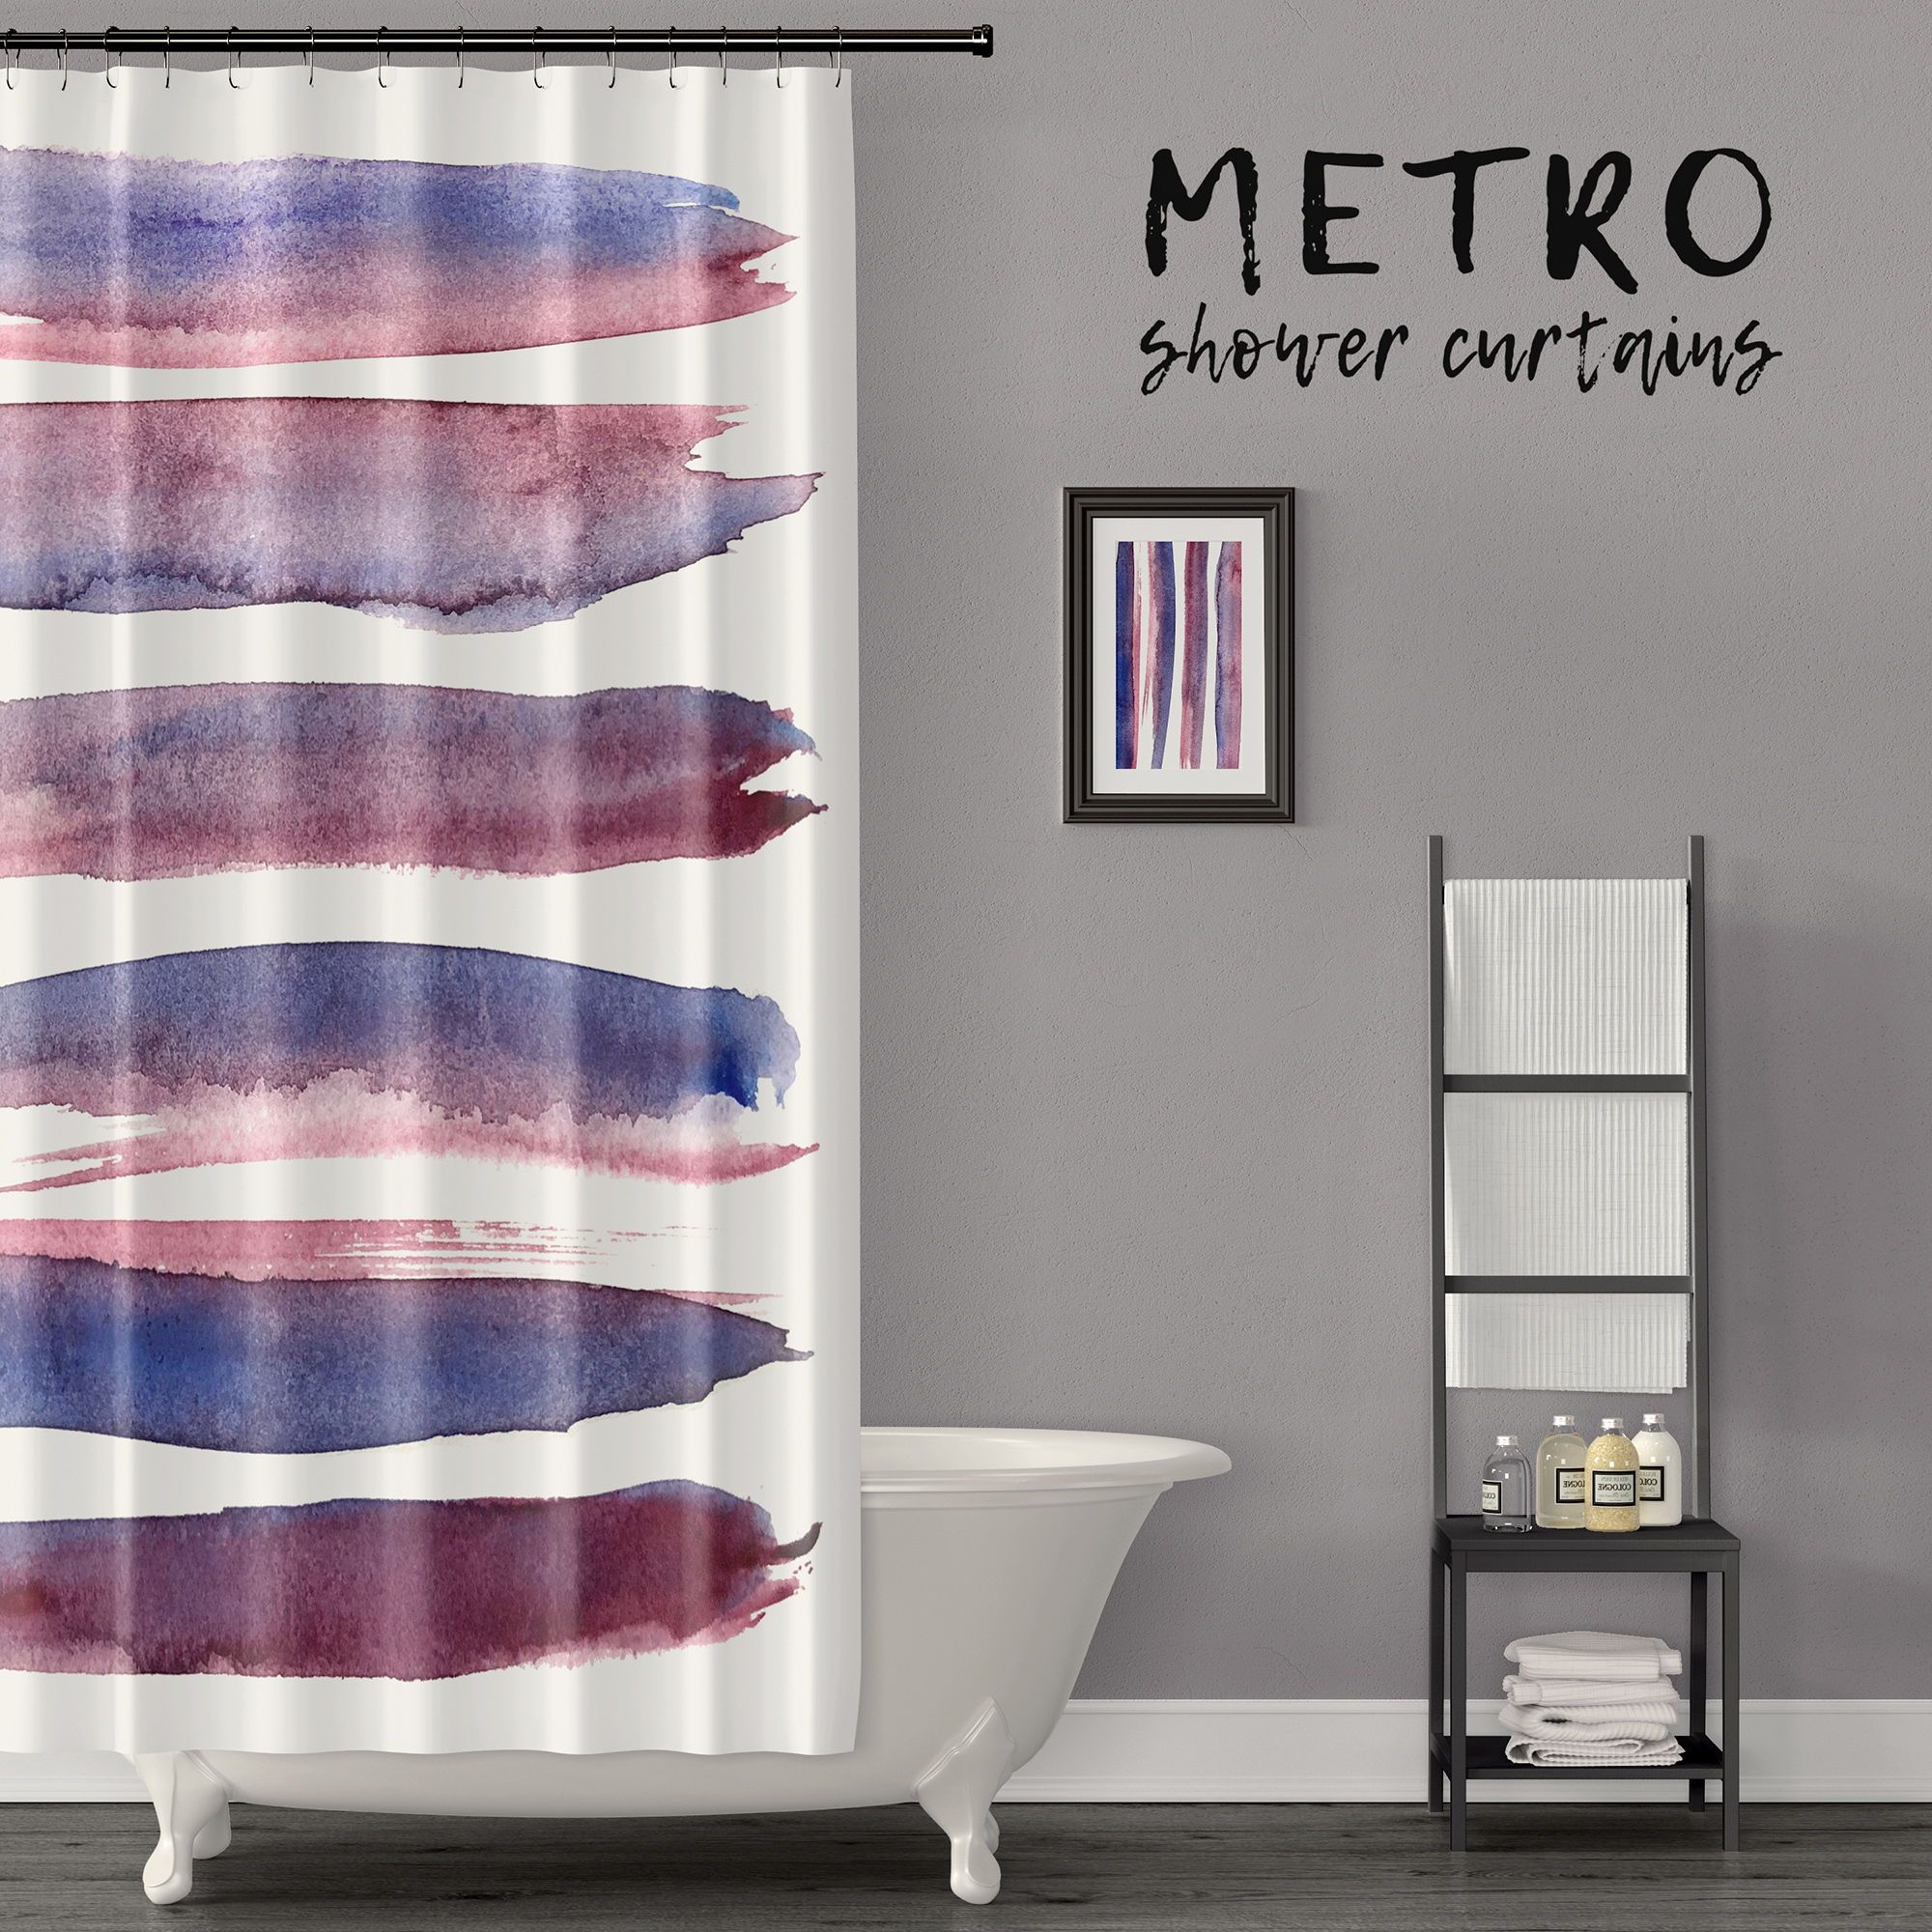 Zen Out Your Bathroom With This Bold But Clean Brush Stroke Art